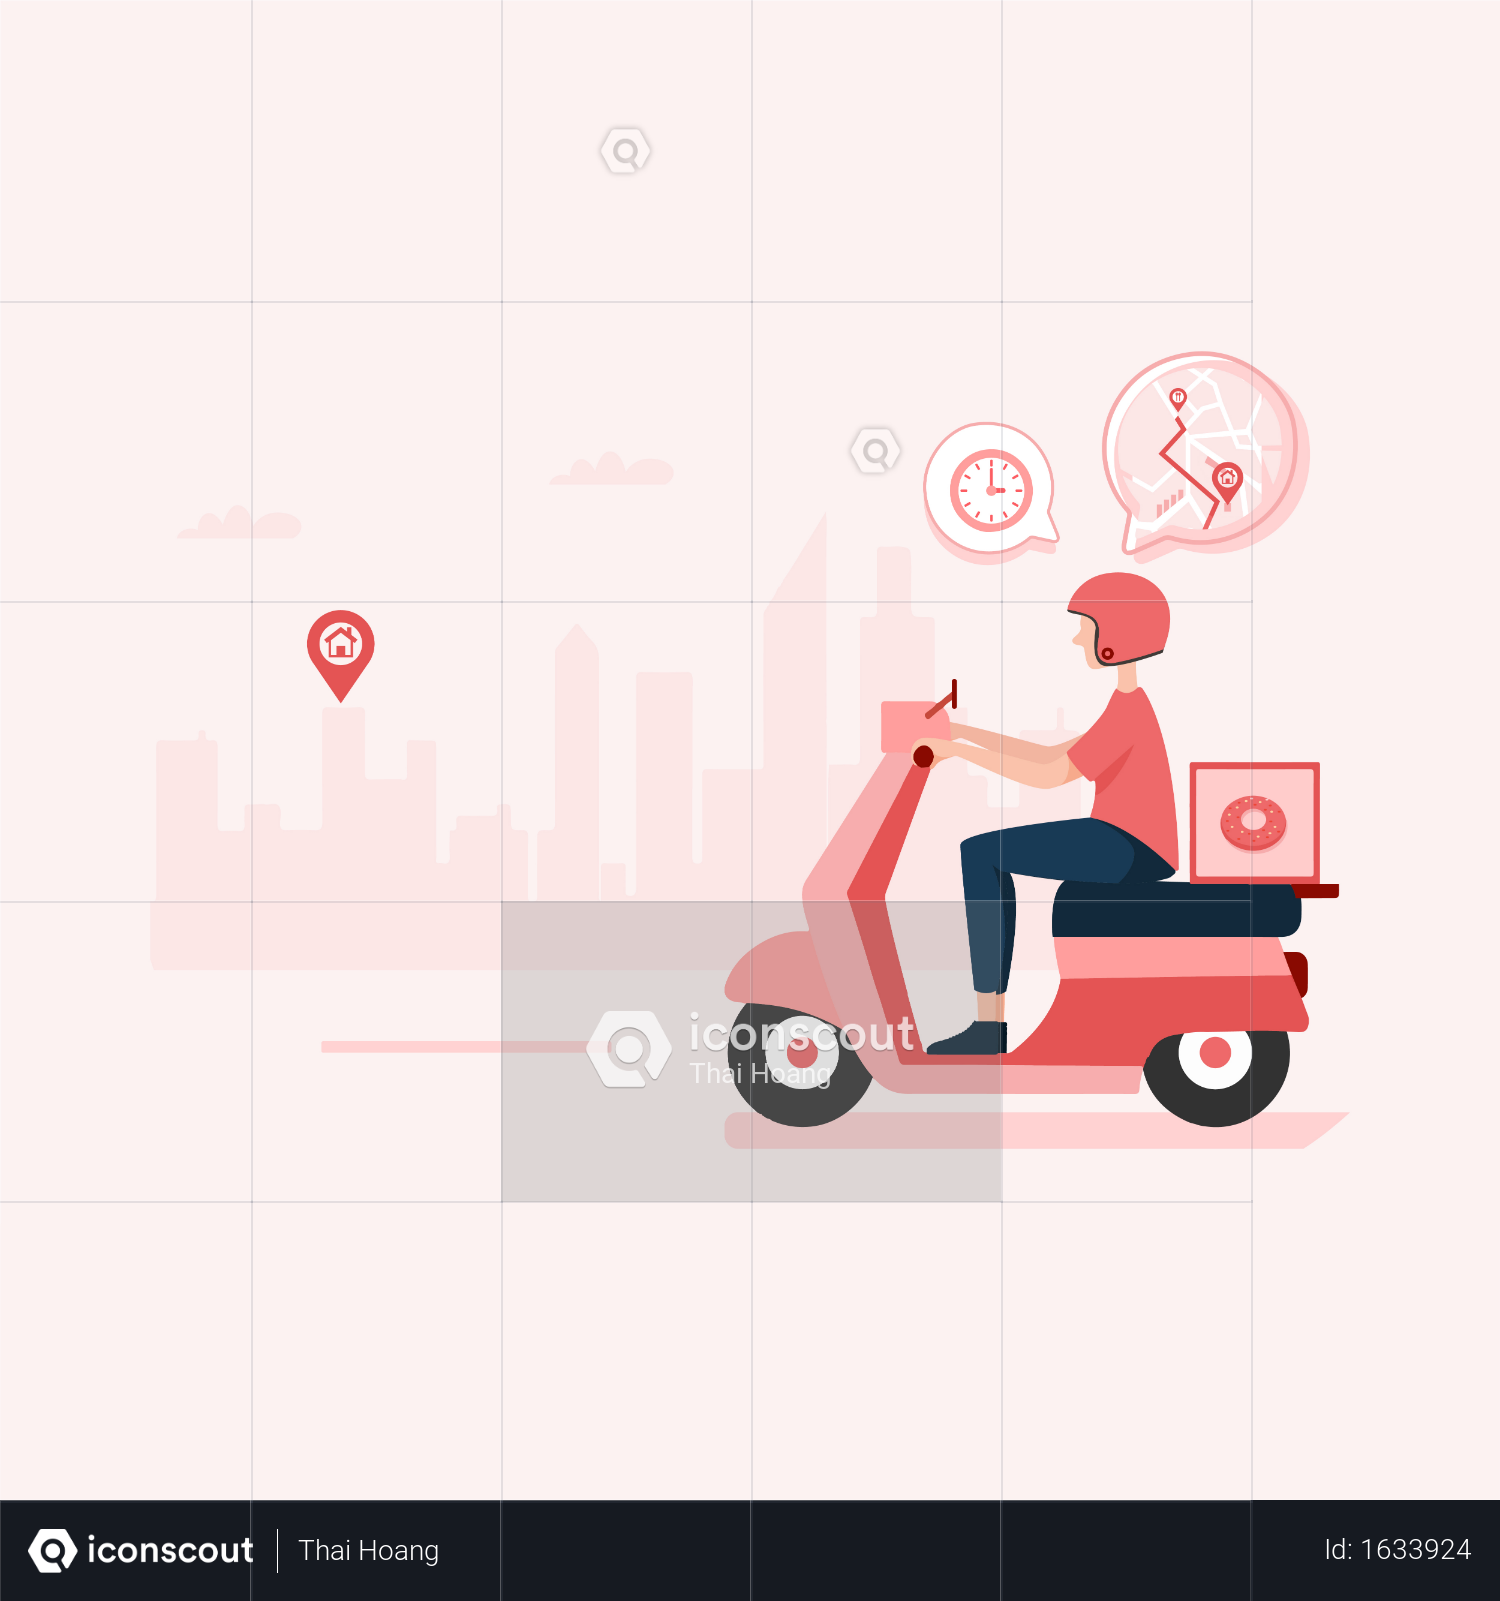 Premium Food Delivery Boy Travelling In City For Food Delivery Illustration Download In Png Vector Format Food Delivery Illustration Premium Food